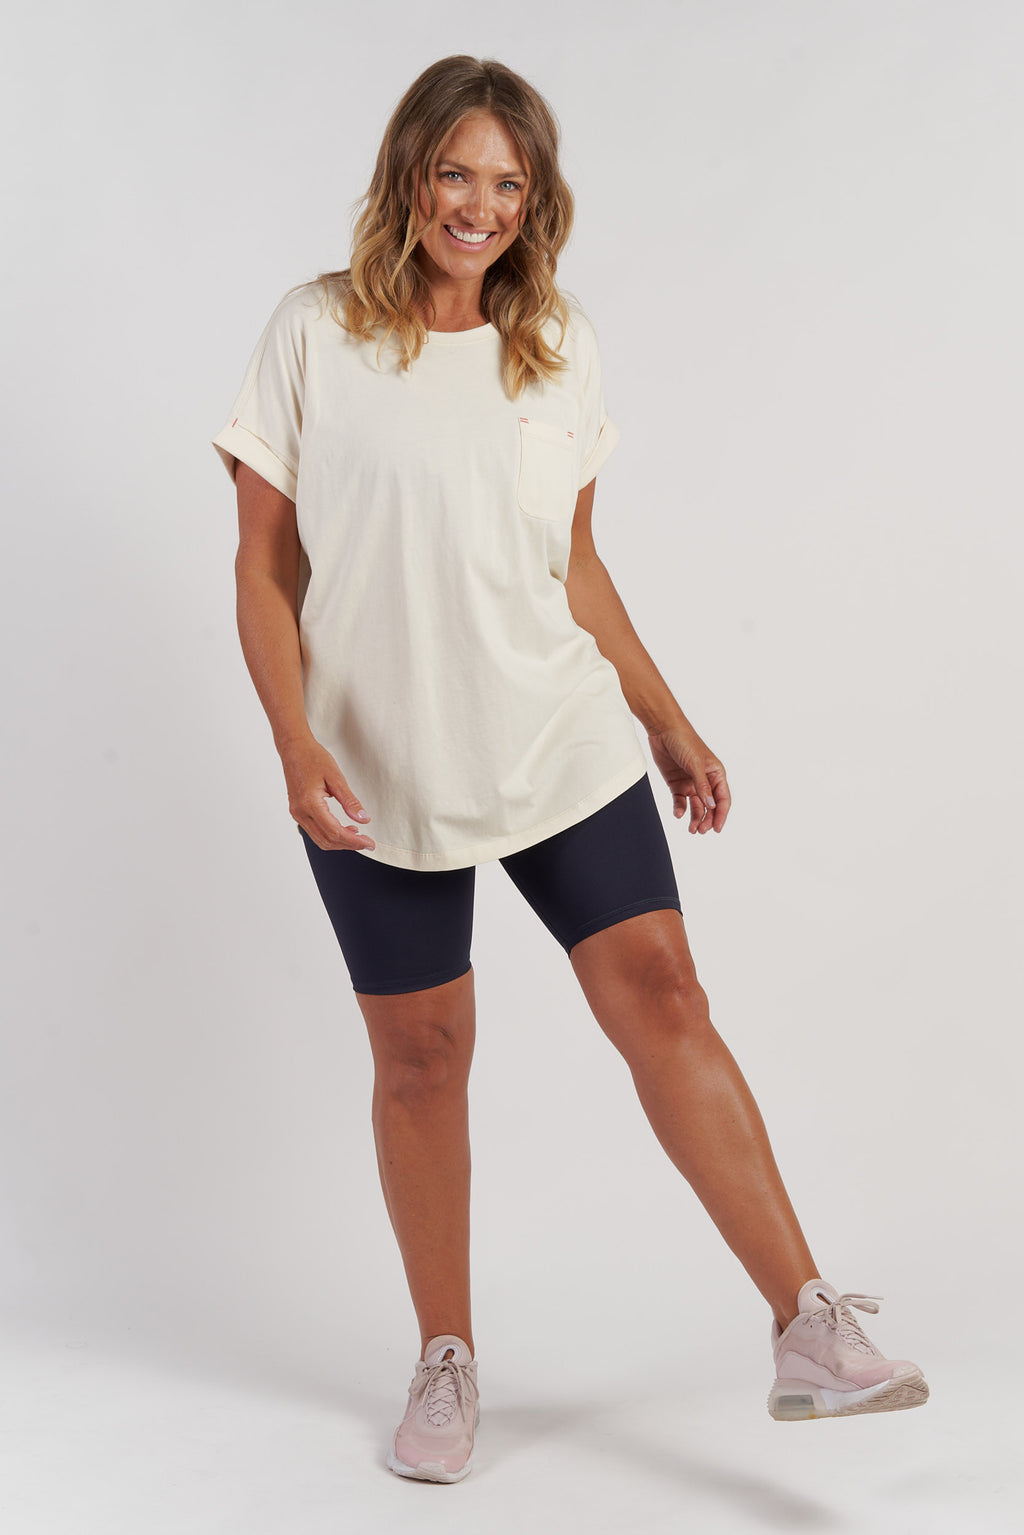 activewear-relaxed-pocket-tee-wintage-white-large-front